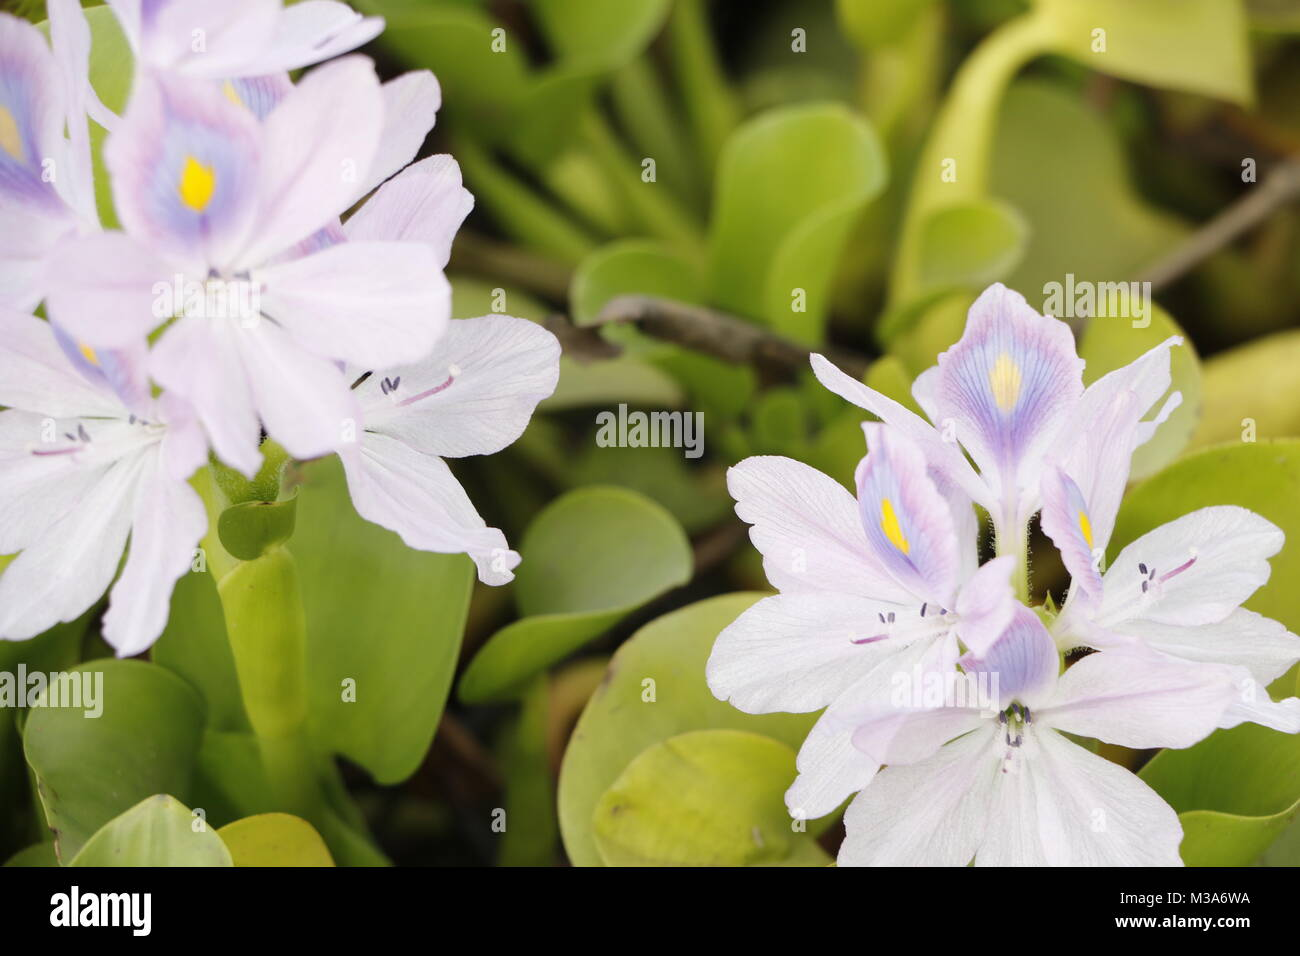 Water hyacinth a purple blue floating flower - Stock Image